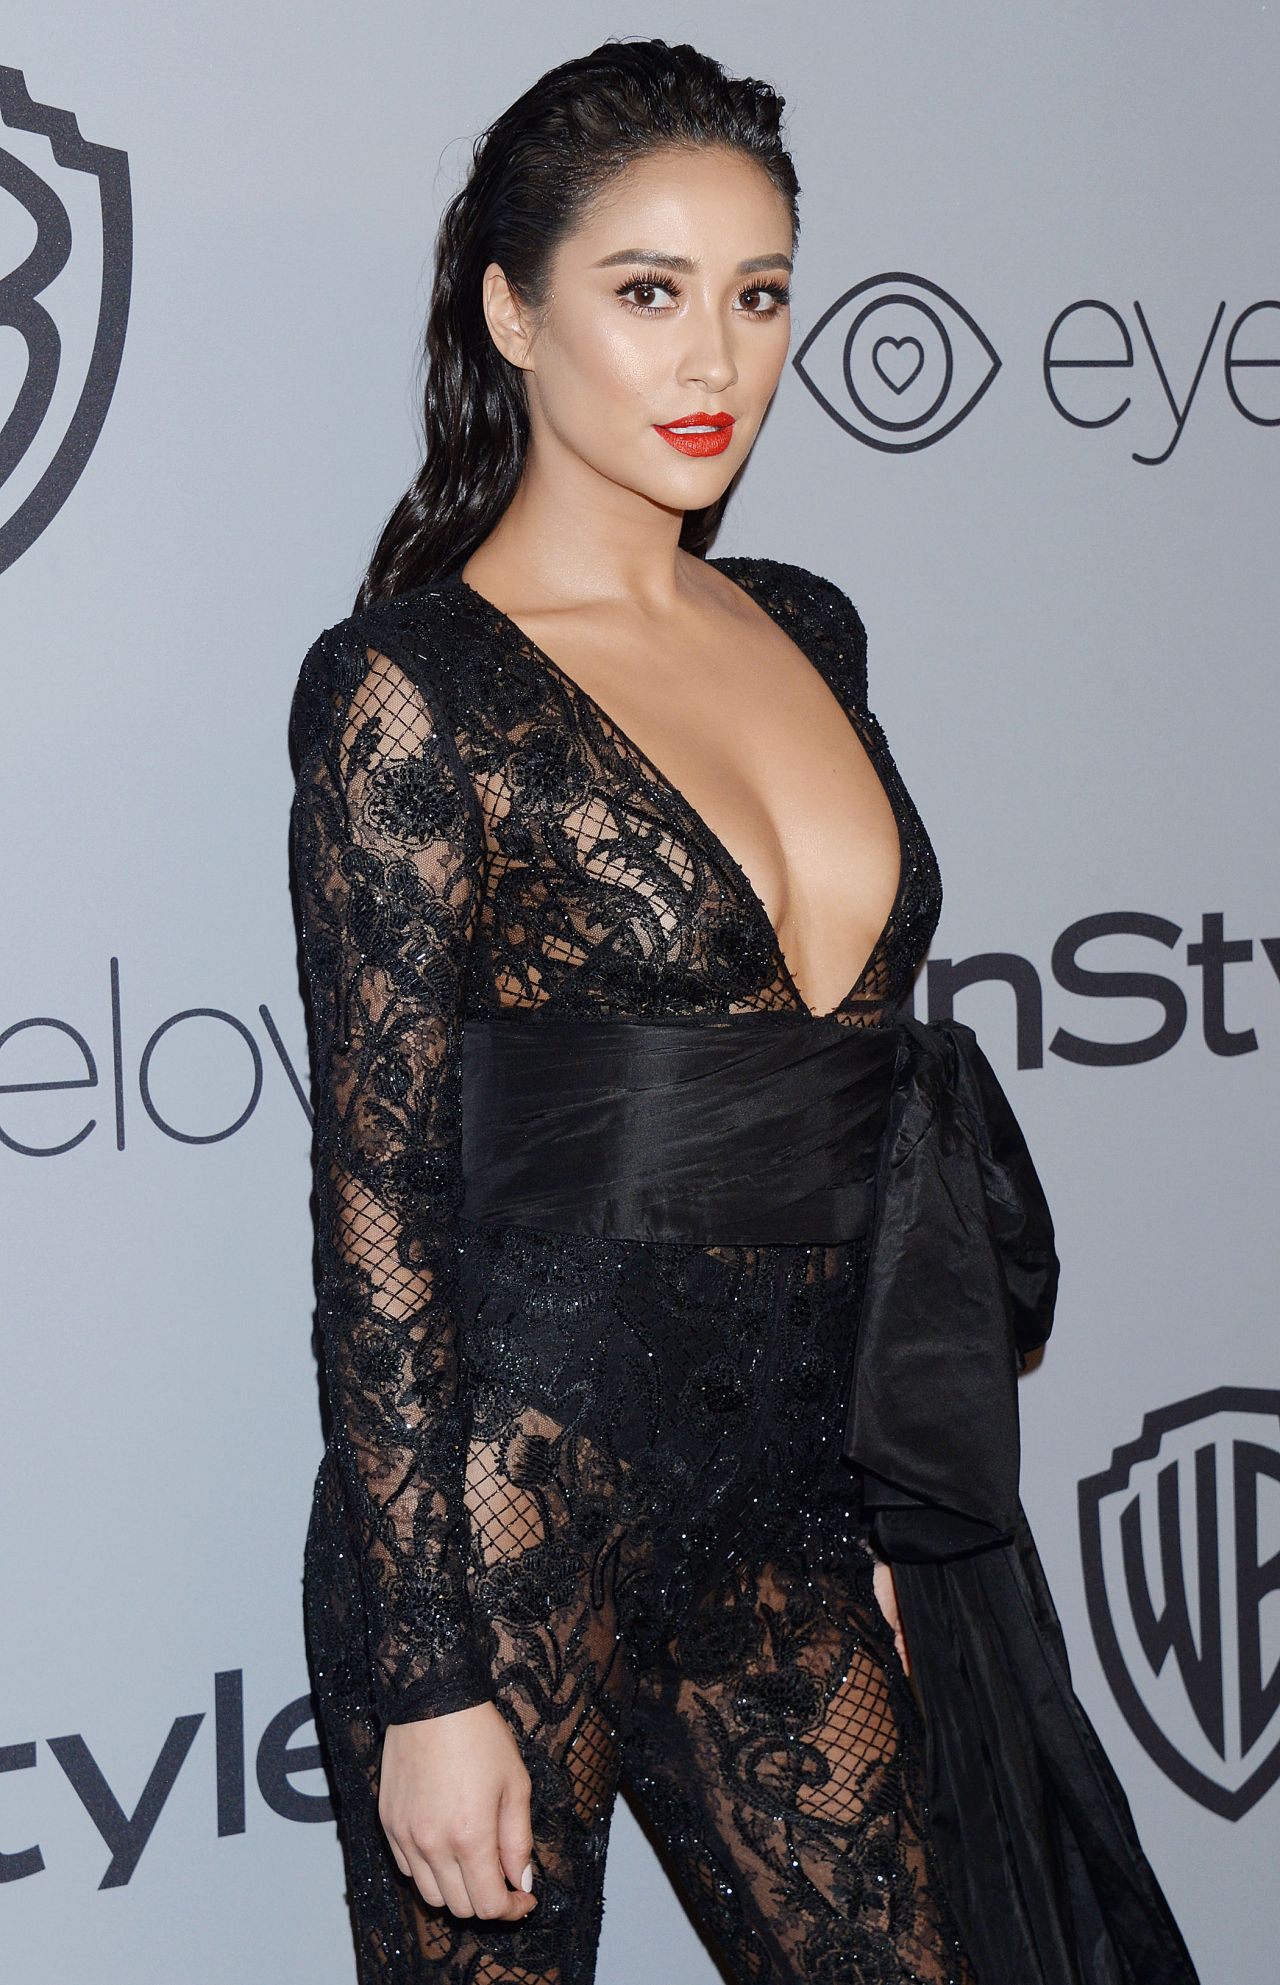 http://celebmafia.com/wp-content/uploads/2018/01/shay-mitchell-instyle-and-warner-bros-golden-globes-2018-after-party-3.jpg